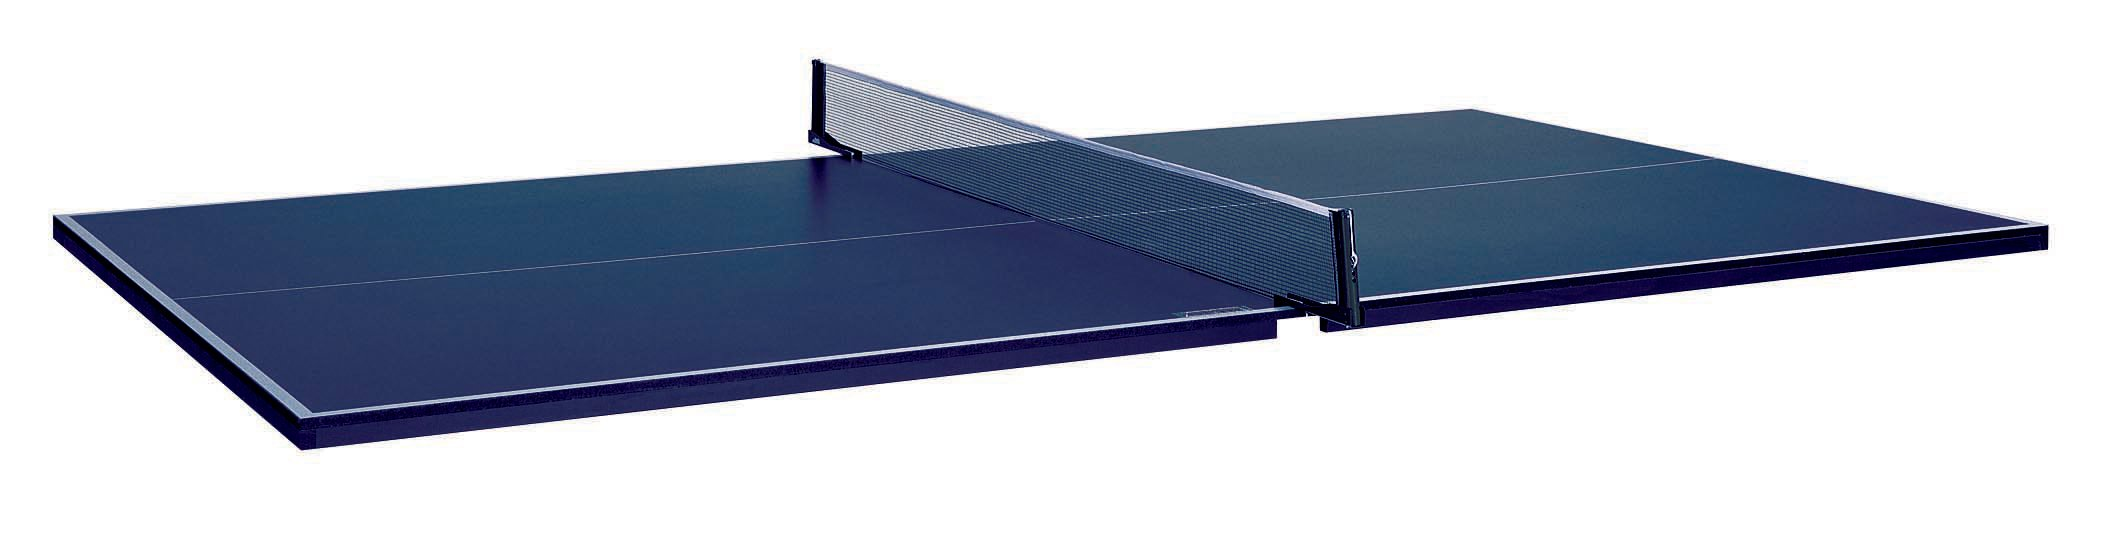 Martin Kilpatrick Pool Conversion Table Top with 2 Player Racket Set, 3 Year Warranty, Net Set, Foam Pads, Protection Rails by Martin Kilpatrick